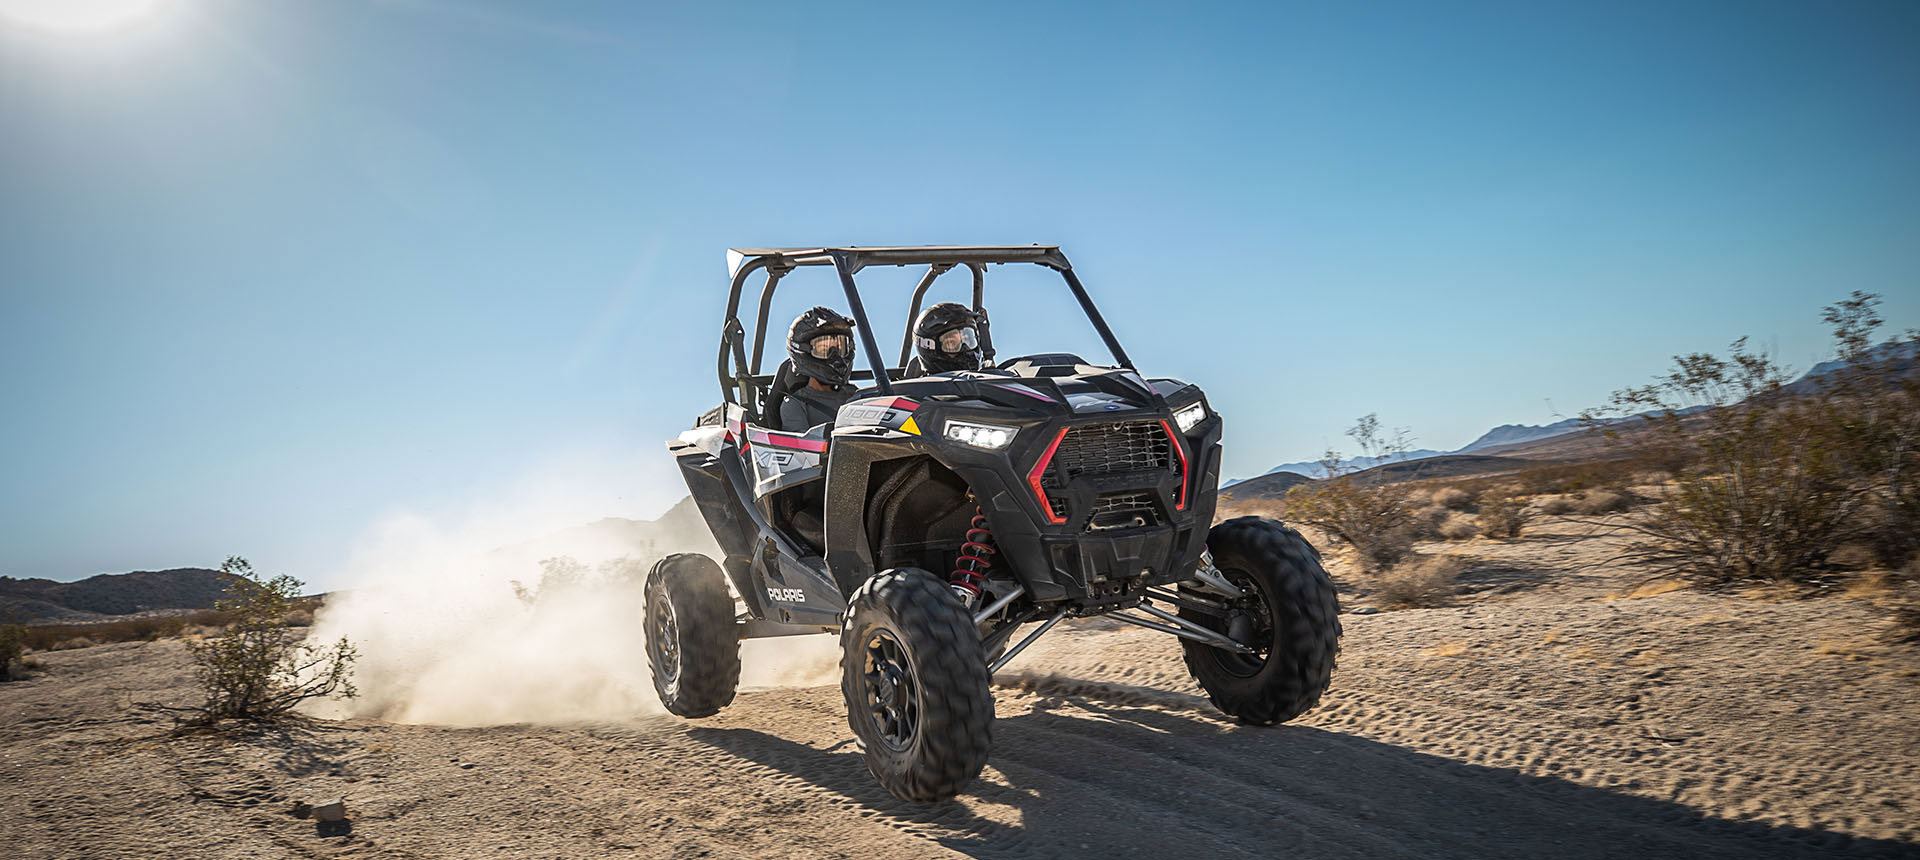 2019 Polaris RZR XP 1000 in Elkhart, Indiana - Photo 8